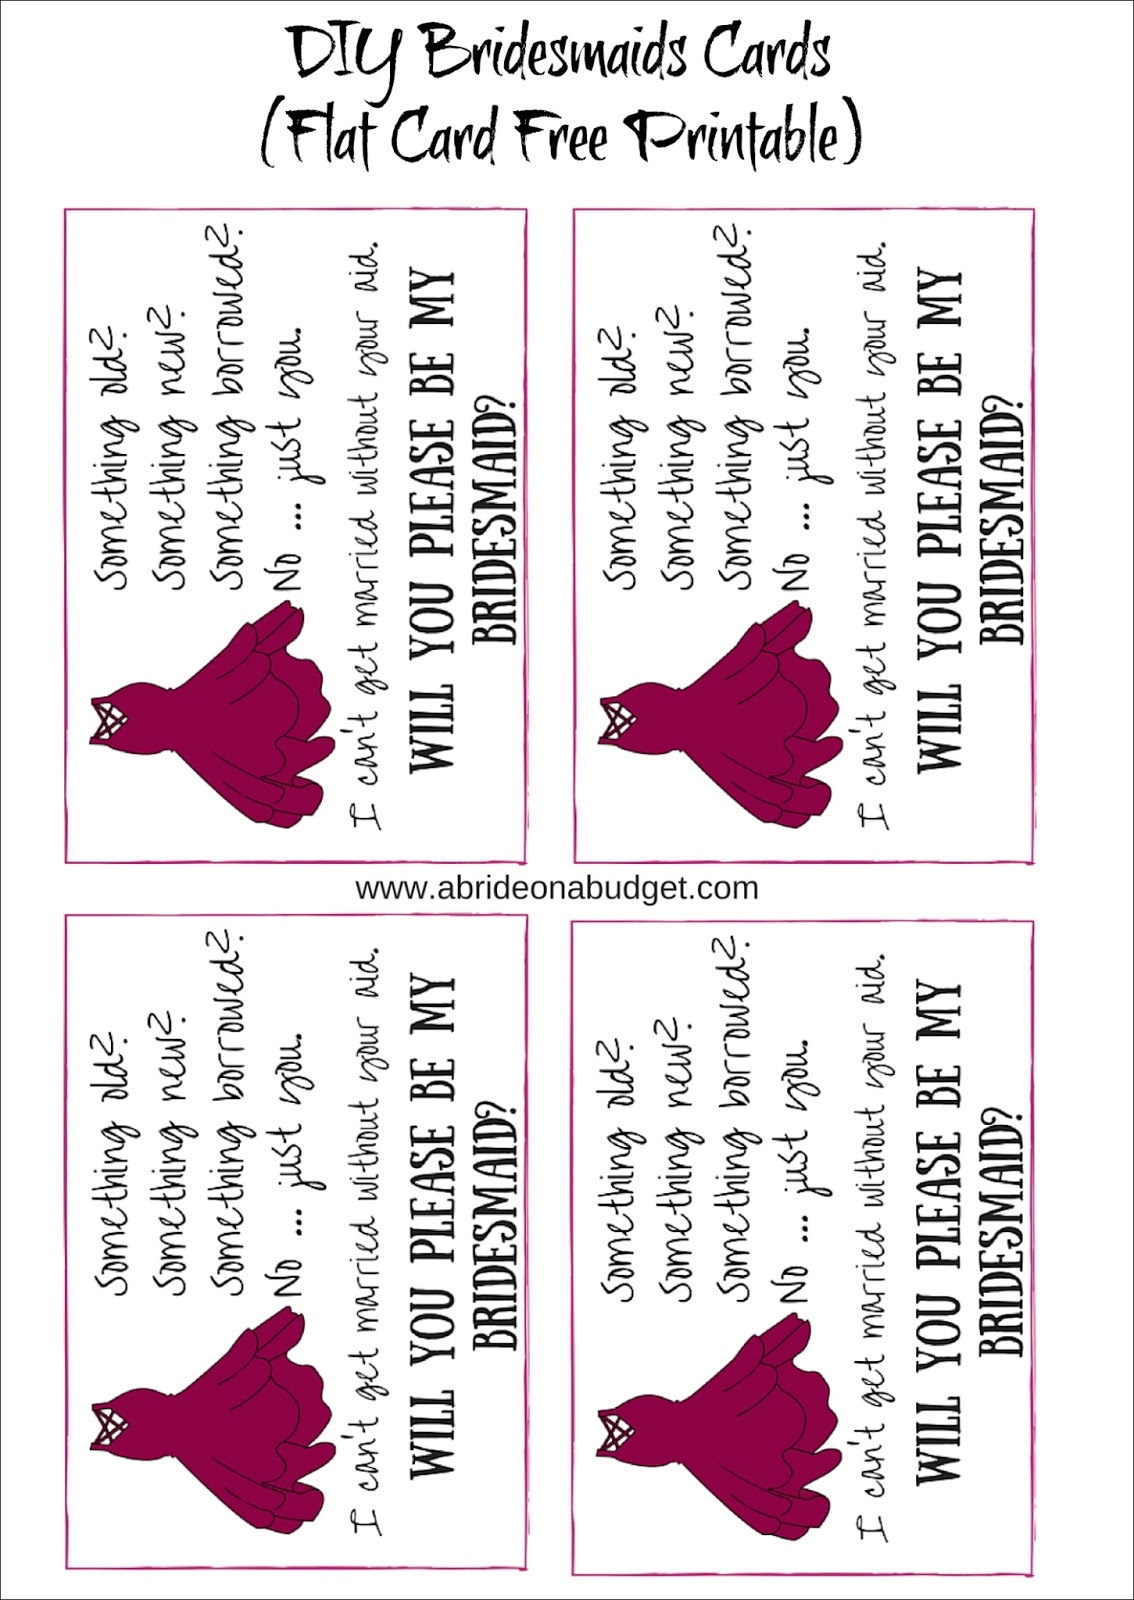 picture about Free Printable Bridesmaid Proposal identified as Do-it-yourself Bridesmaids Playing cards (In addition a absolutely free printable for flat and